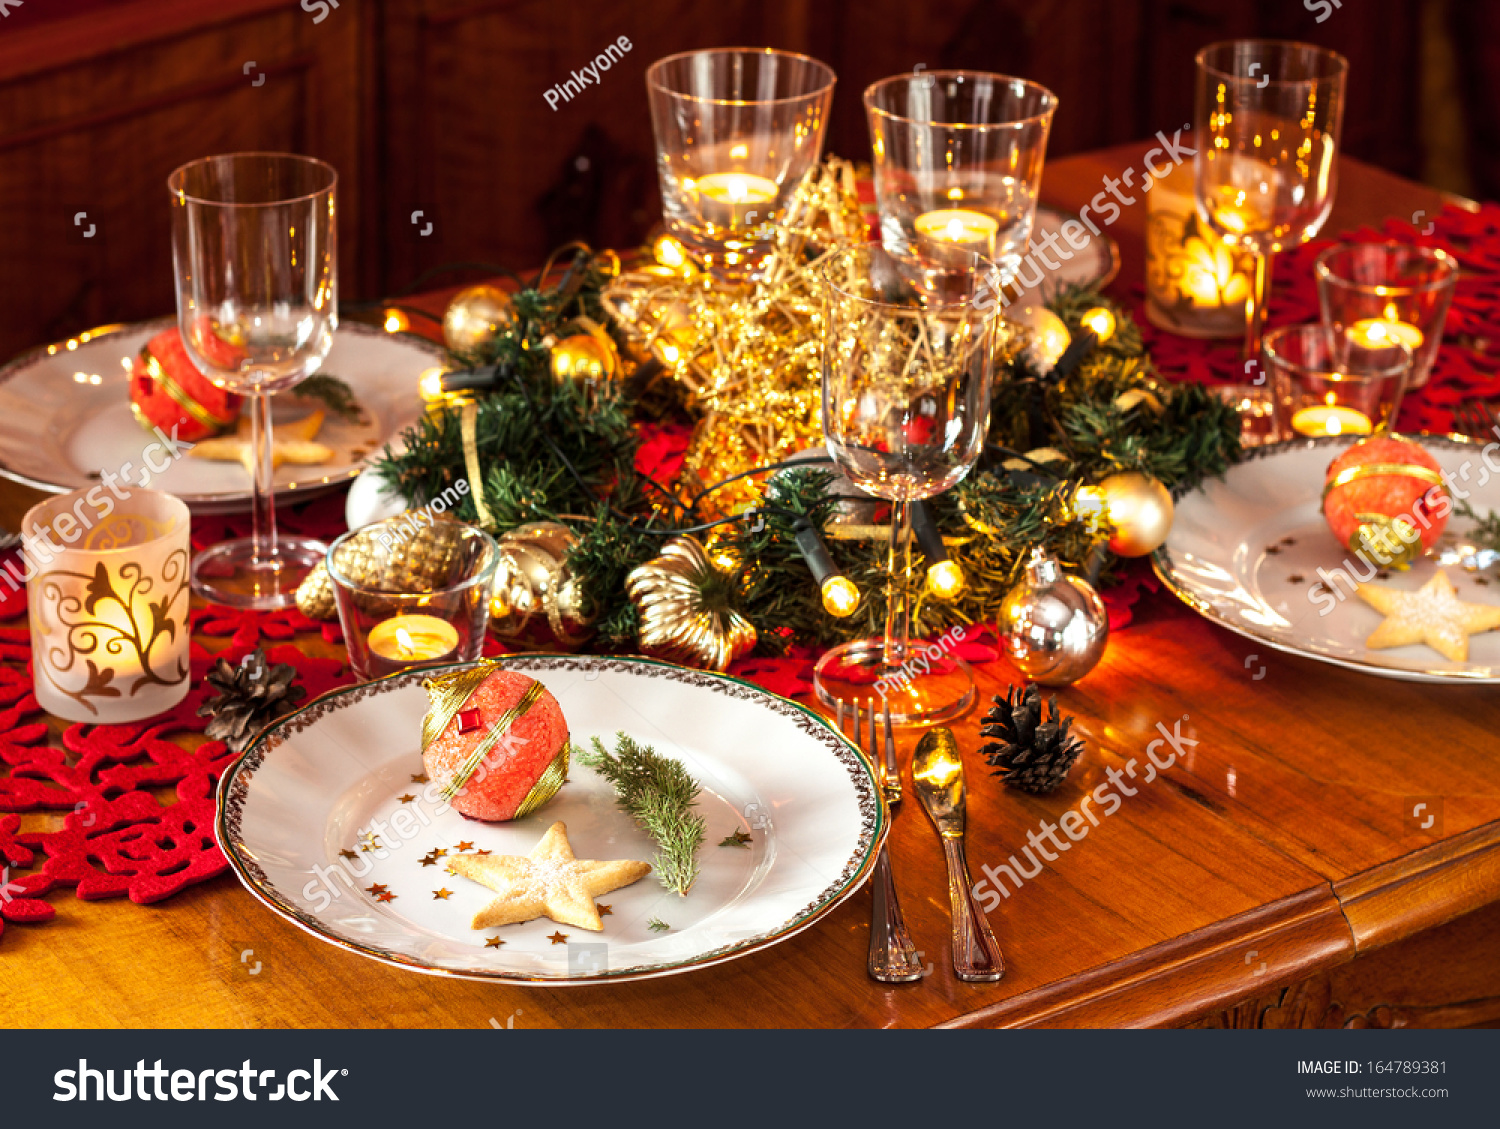 Christmas eve dinner party table setting stock photo Christmas party table settings